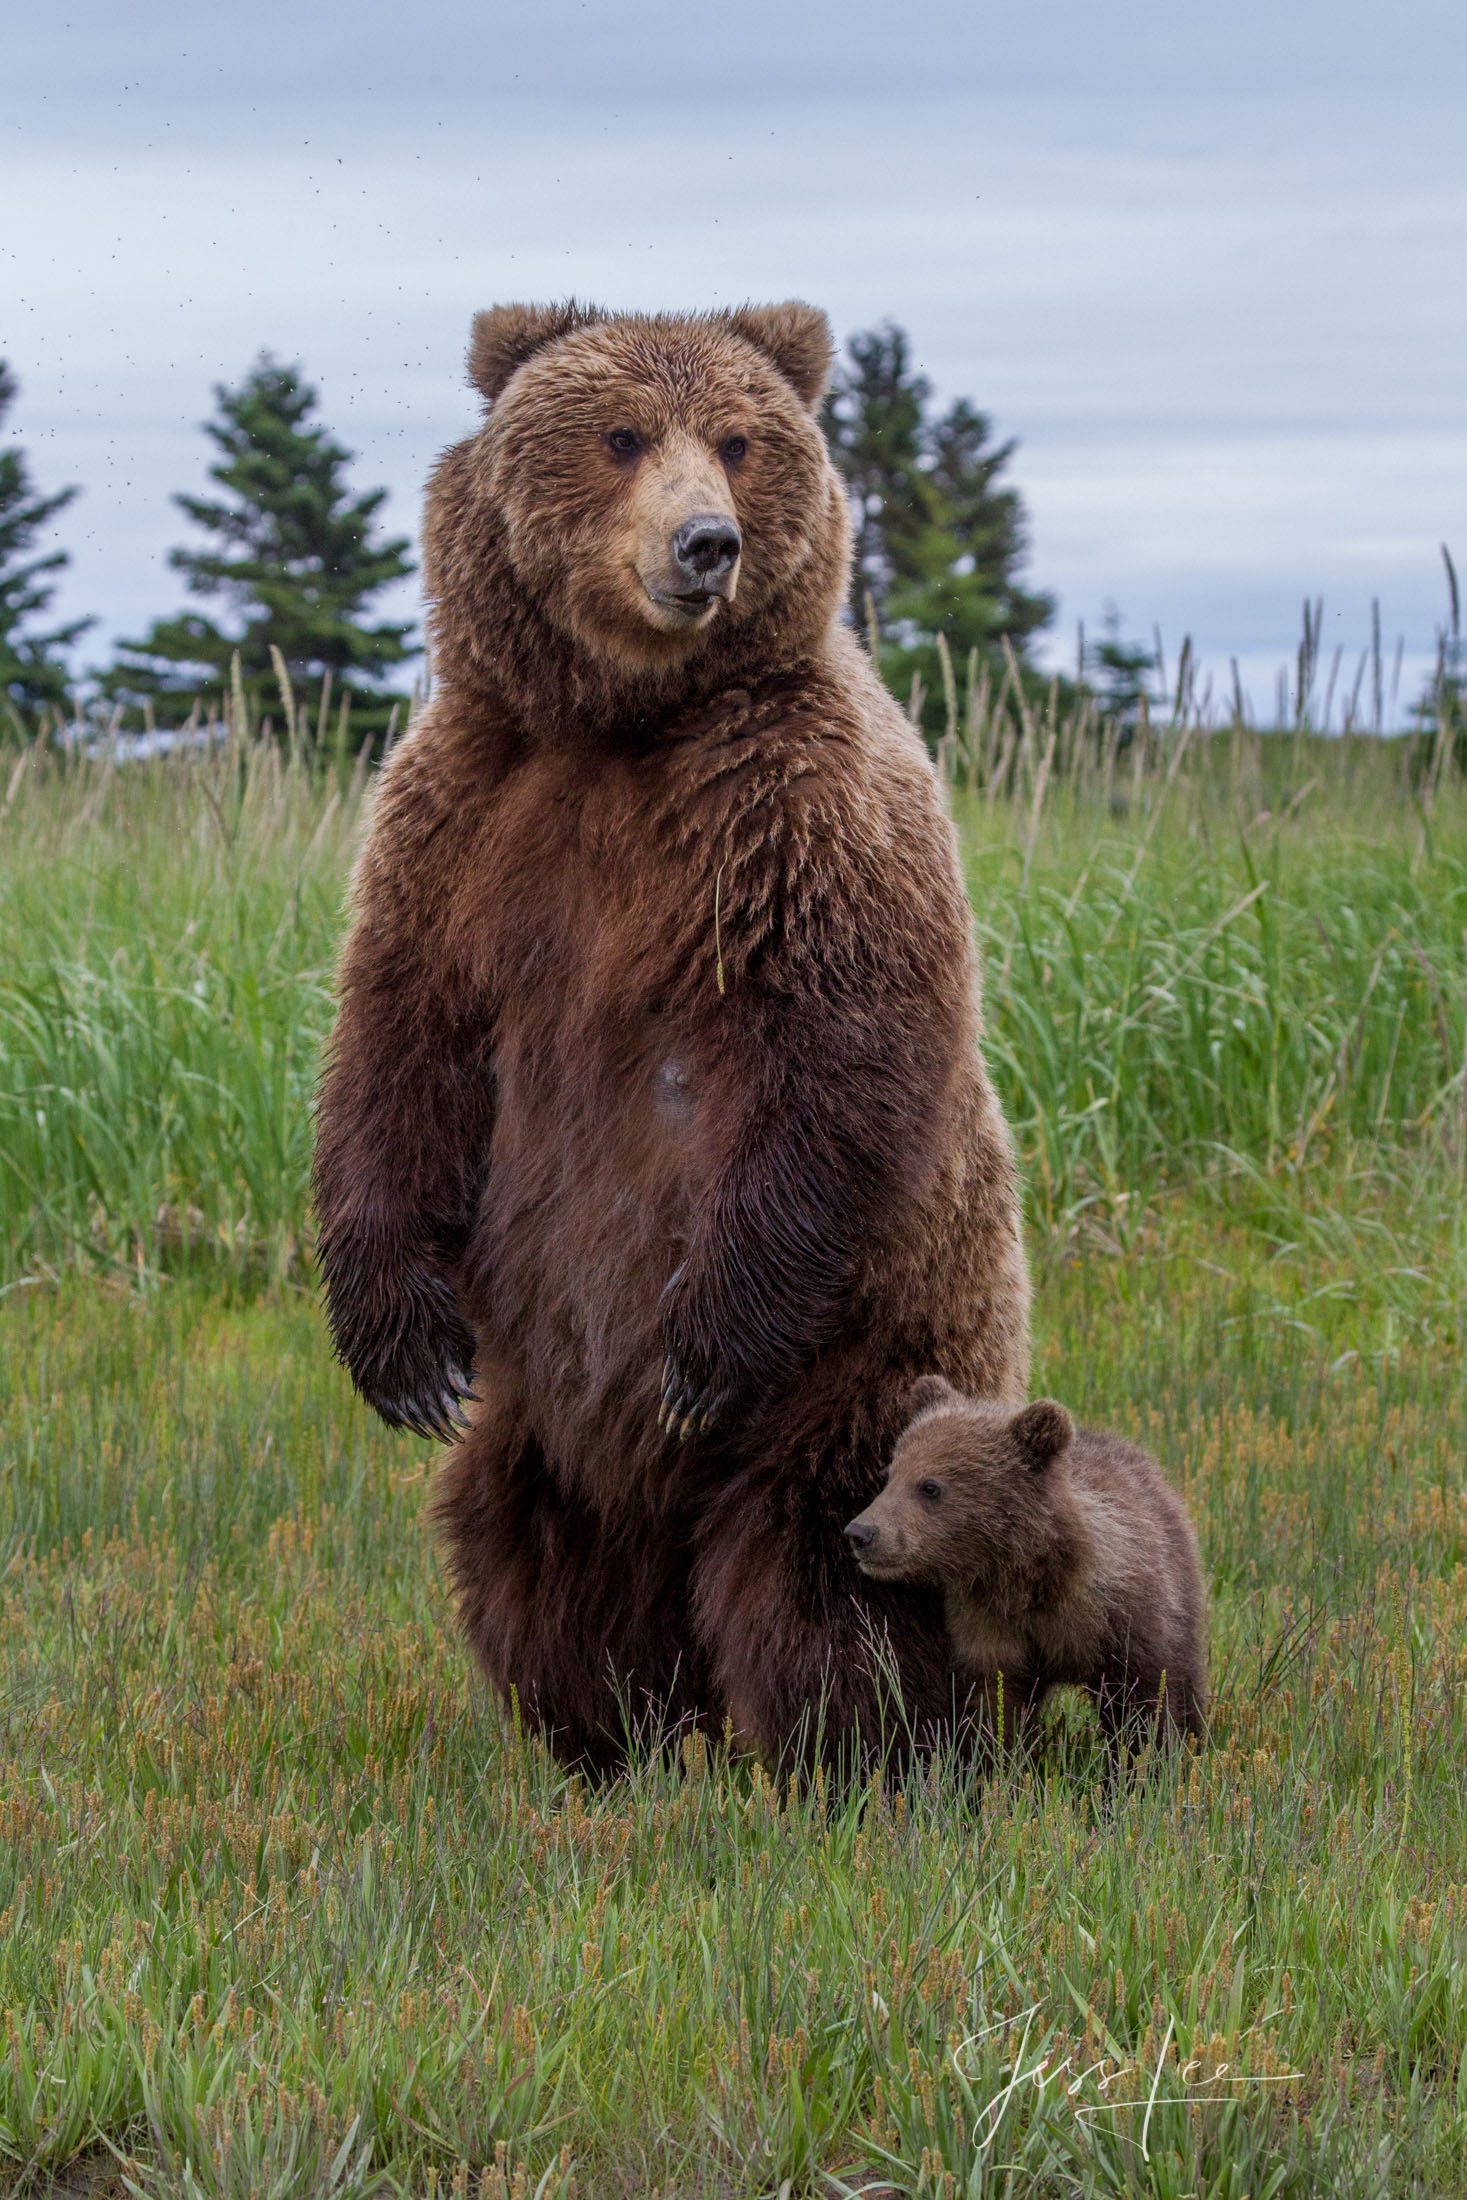 Grizzly and cub standing, alaska, bear, brown, brown bear, coastal, lake clark, national park, Alaska*, bear*, brown bear*, brown bears*, brown*, coastal*, cubs*, grizzlies*, Grizzly*, Jess Lee*, Cook, photo